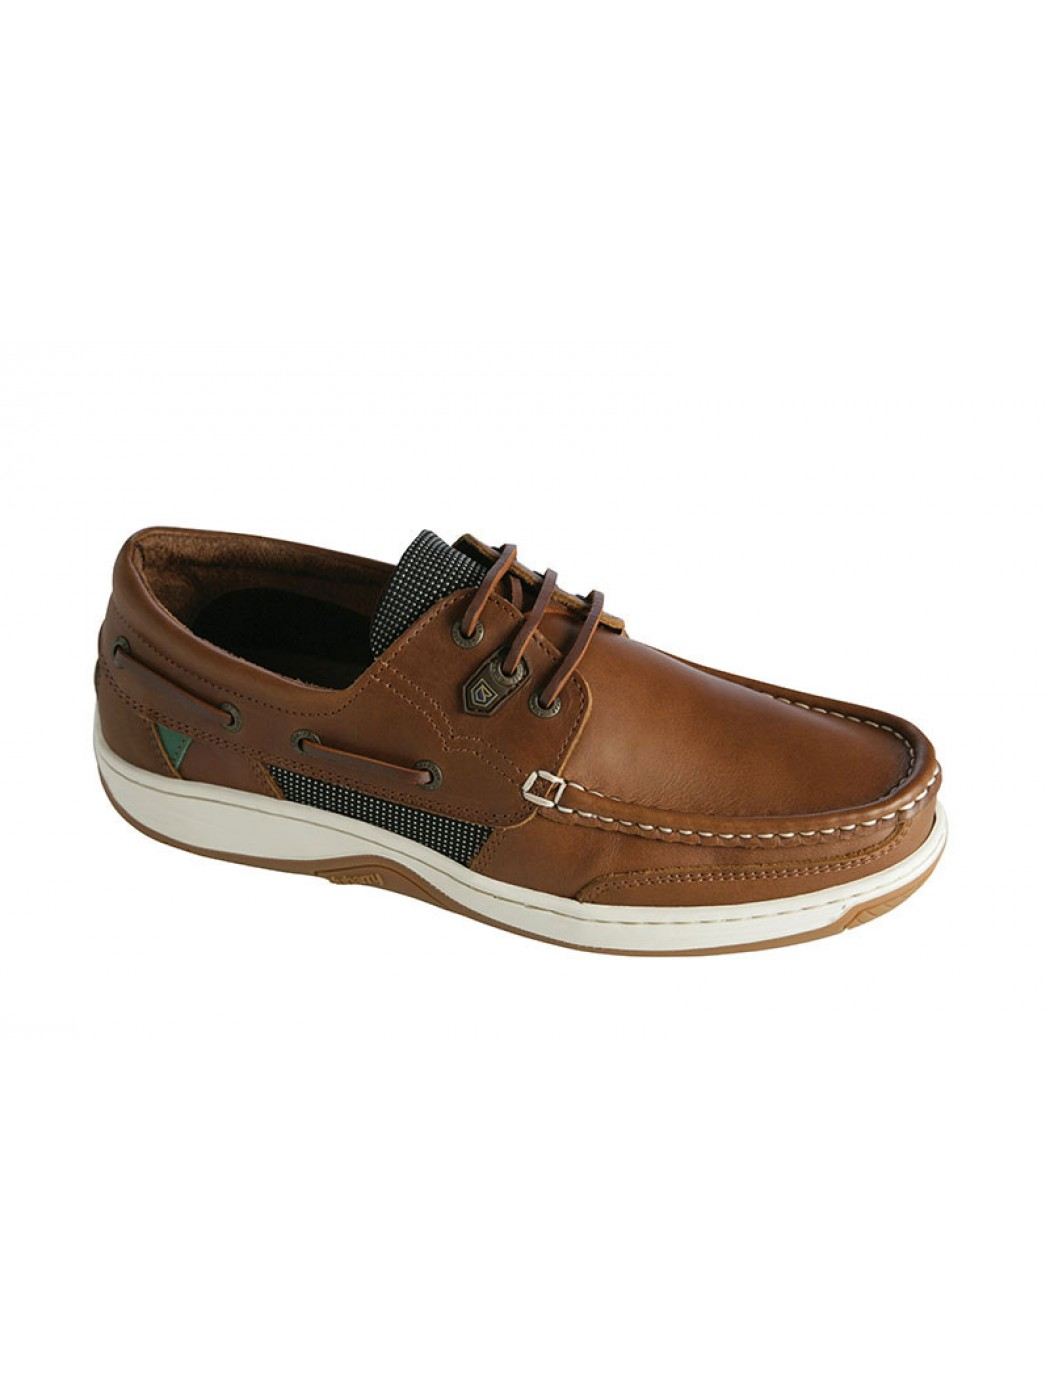 regatta-mens-decks-tan